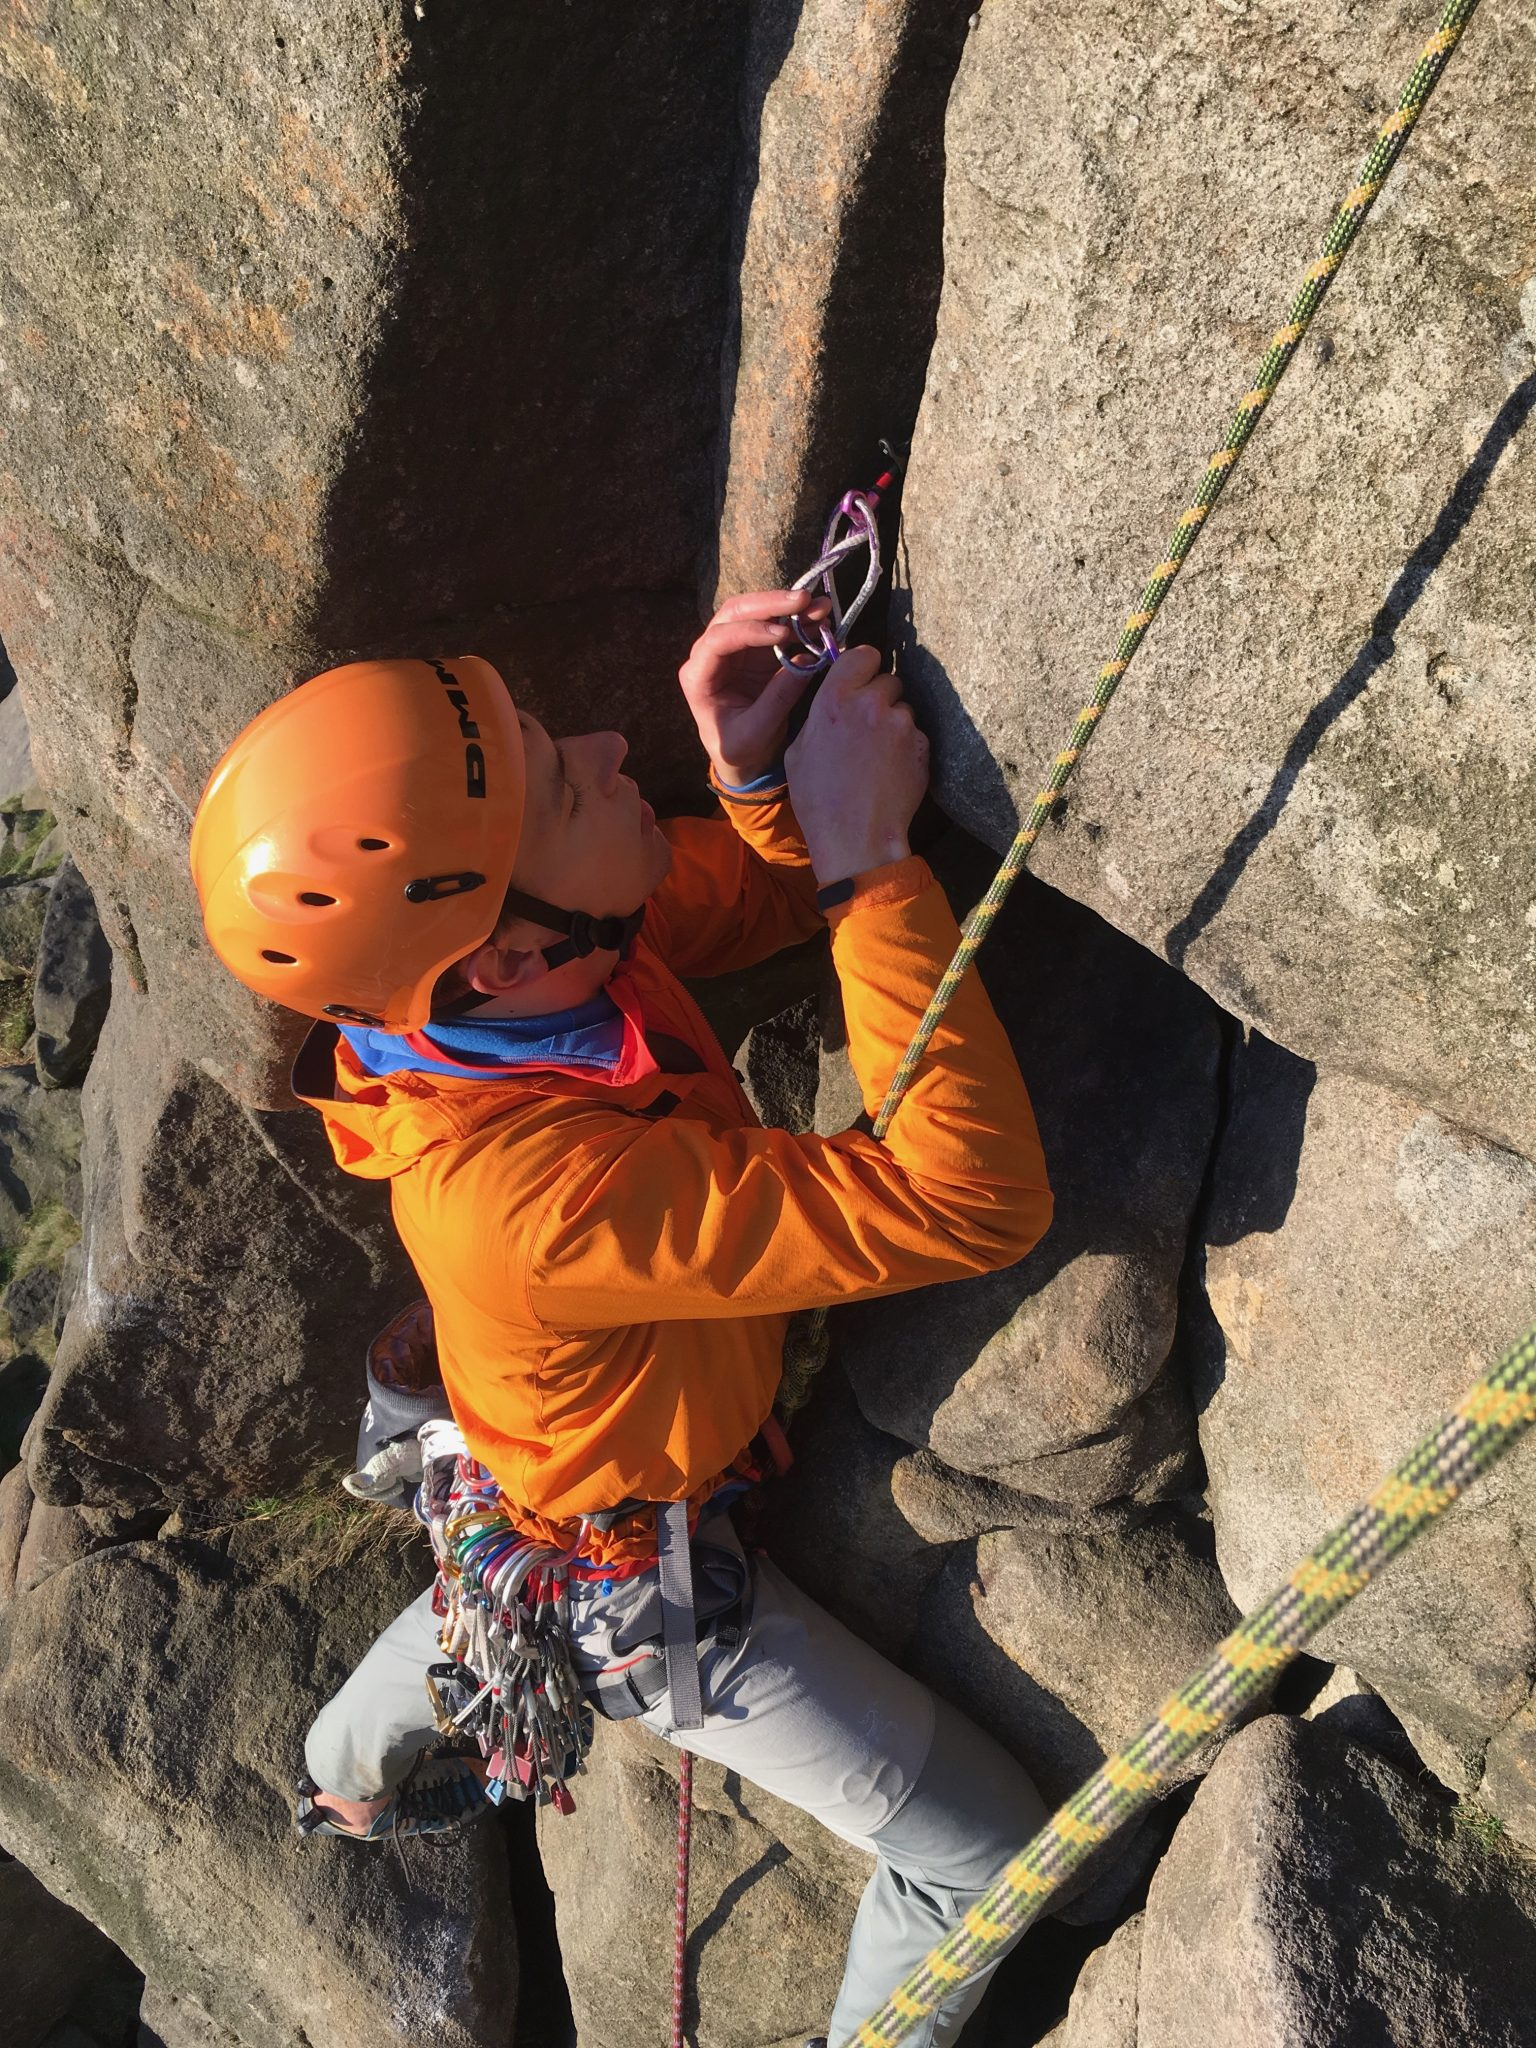 A rock climber removes equipment during a rock climbing course in the Peak District